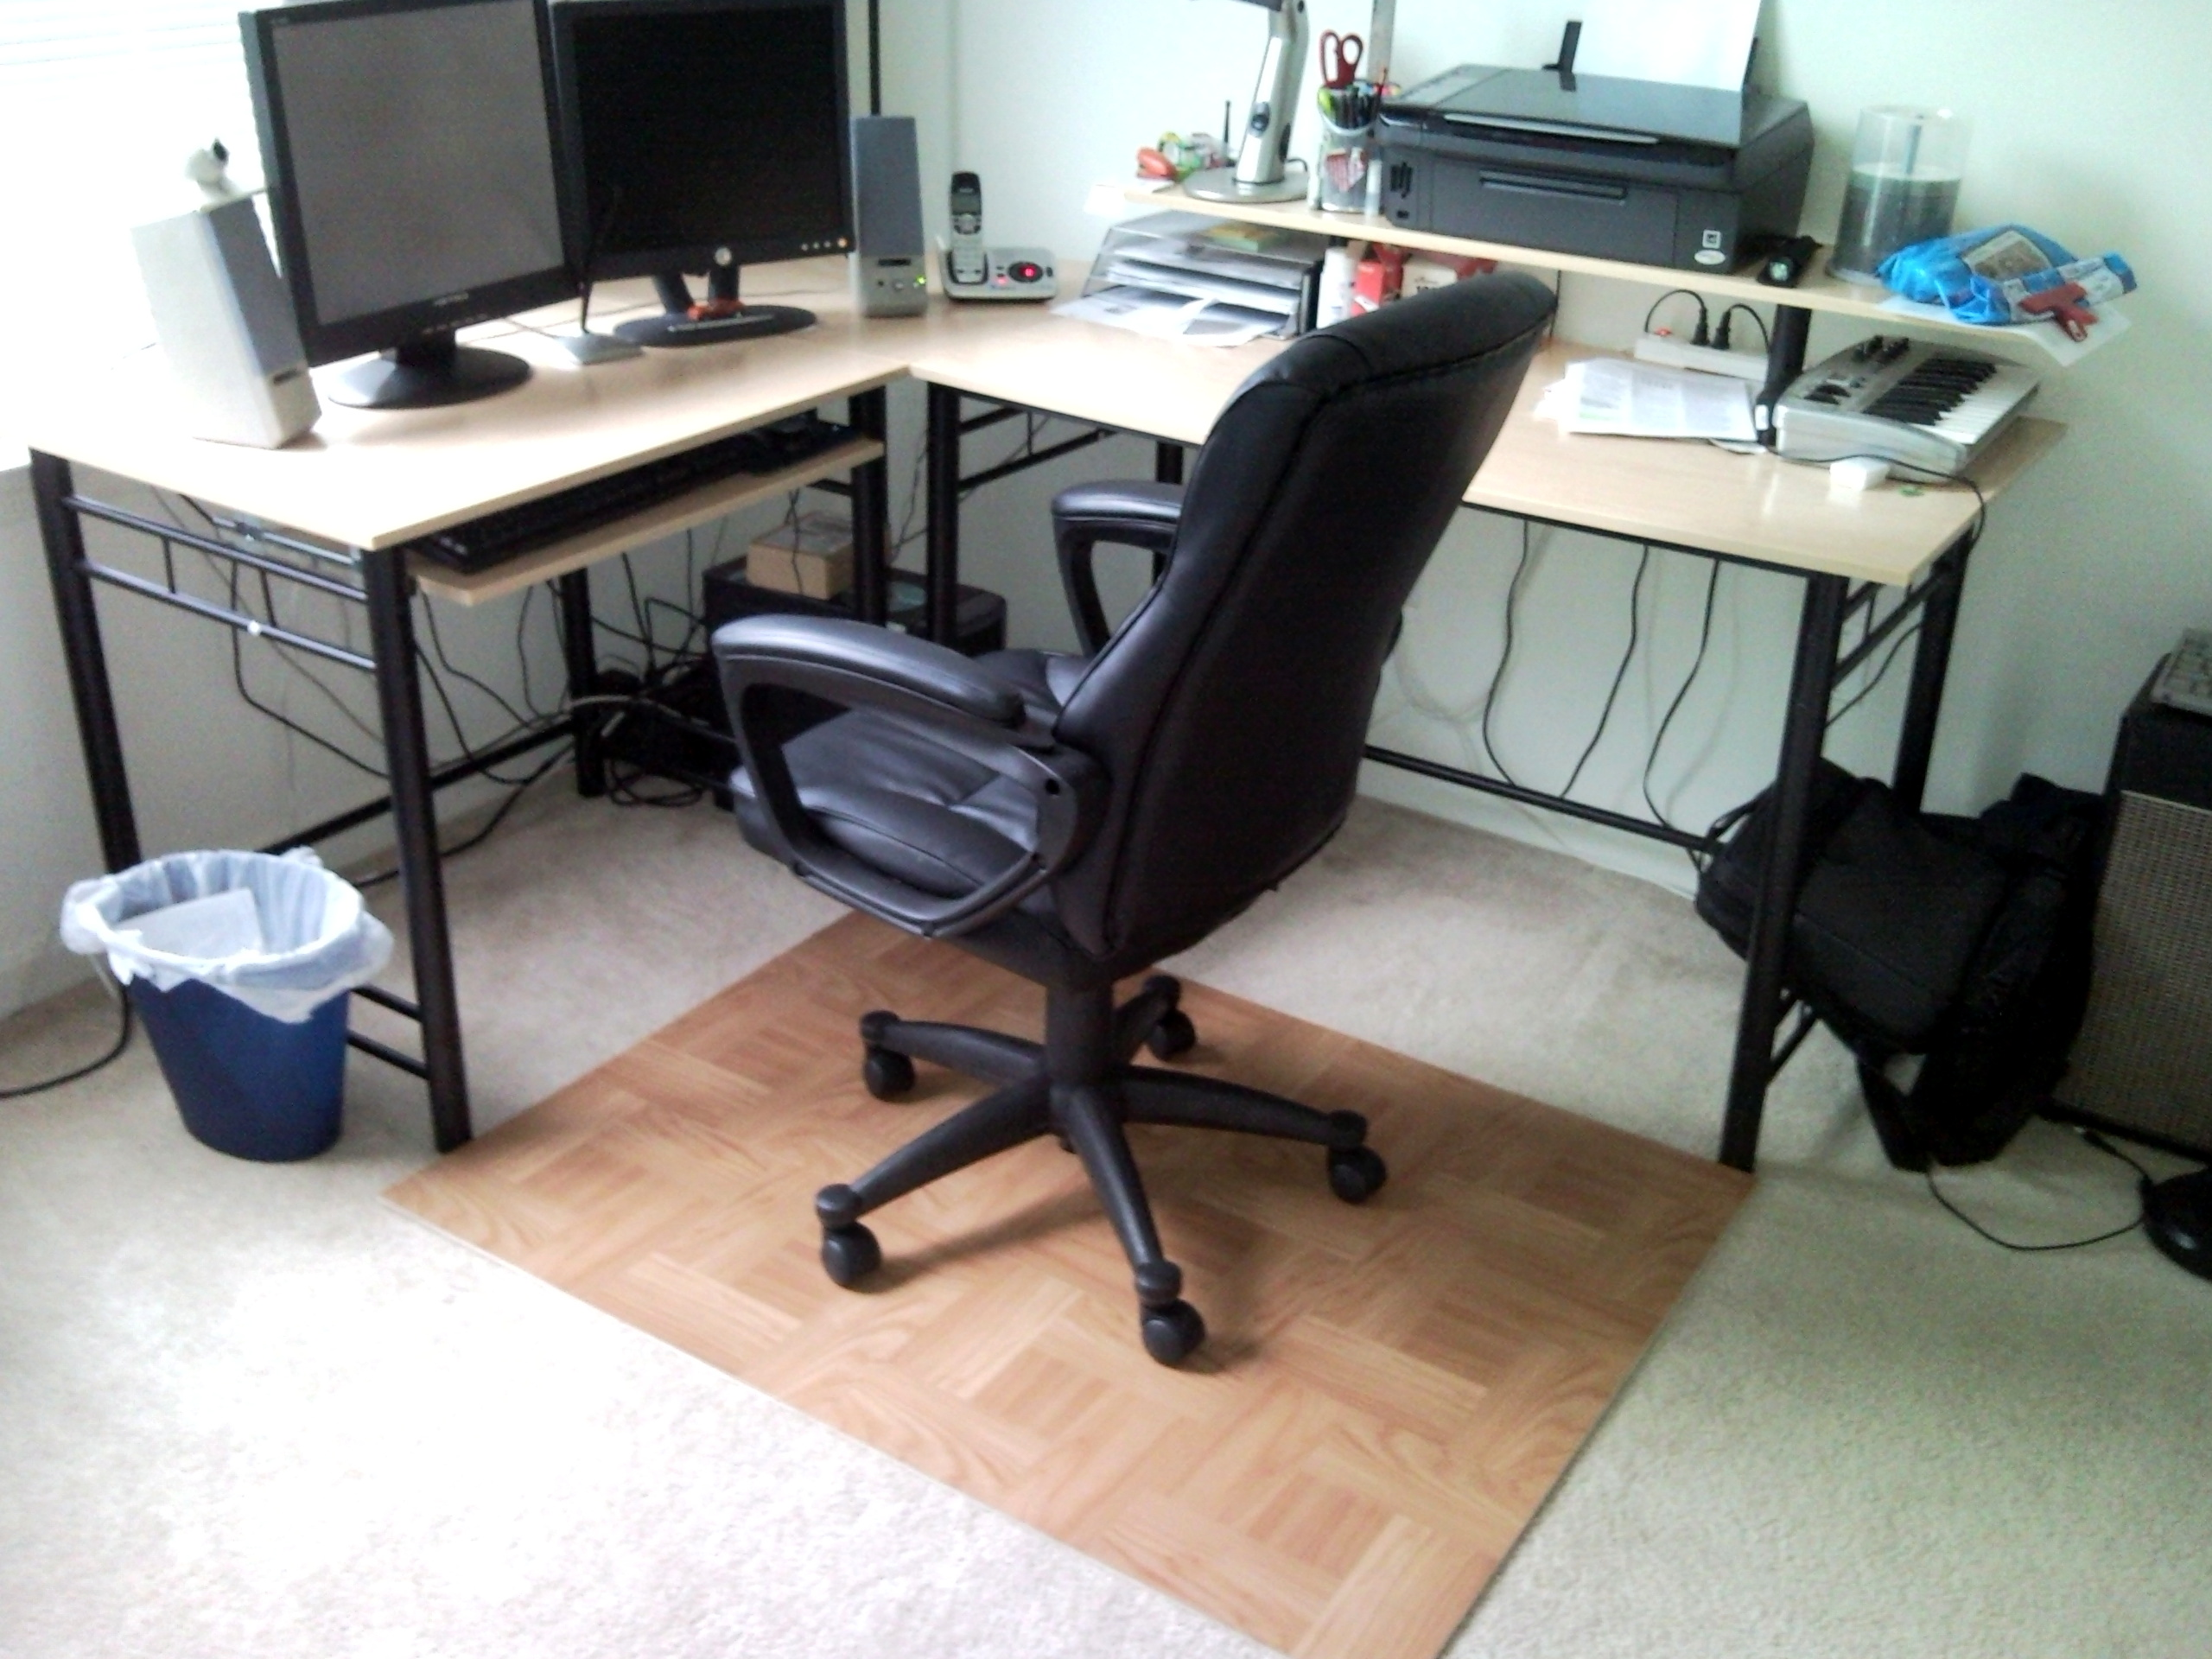 Carpet Mat For Desk Chair fake) wood desk chair carpet mat | hacked_it/hack_edit